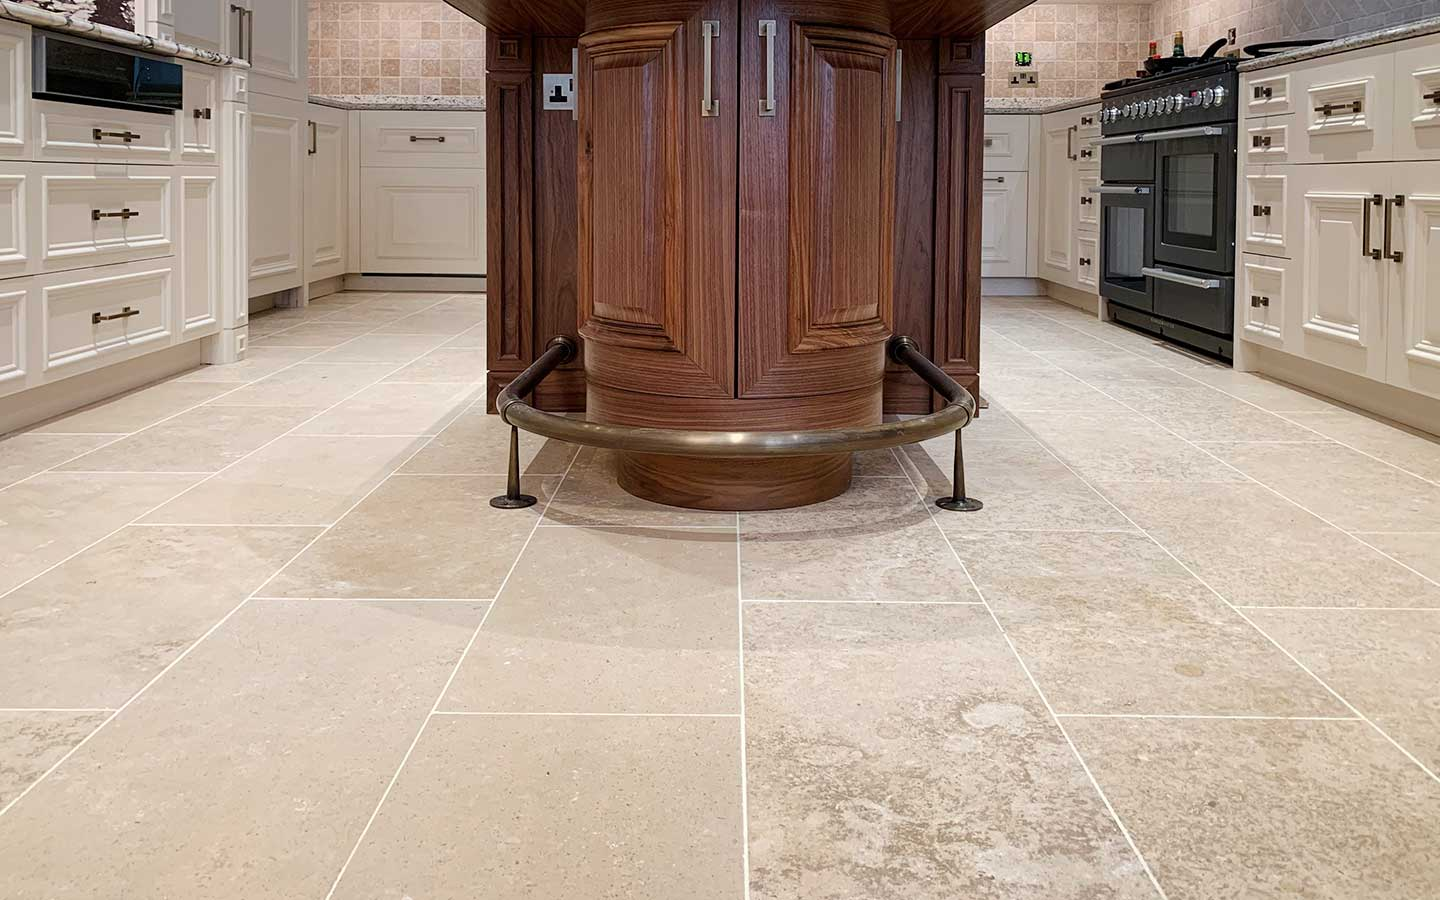 Honed French limestone floor tiles in a traditional kitchen